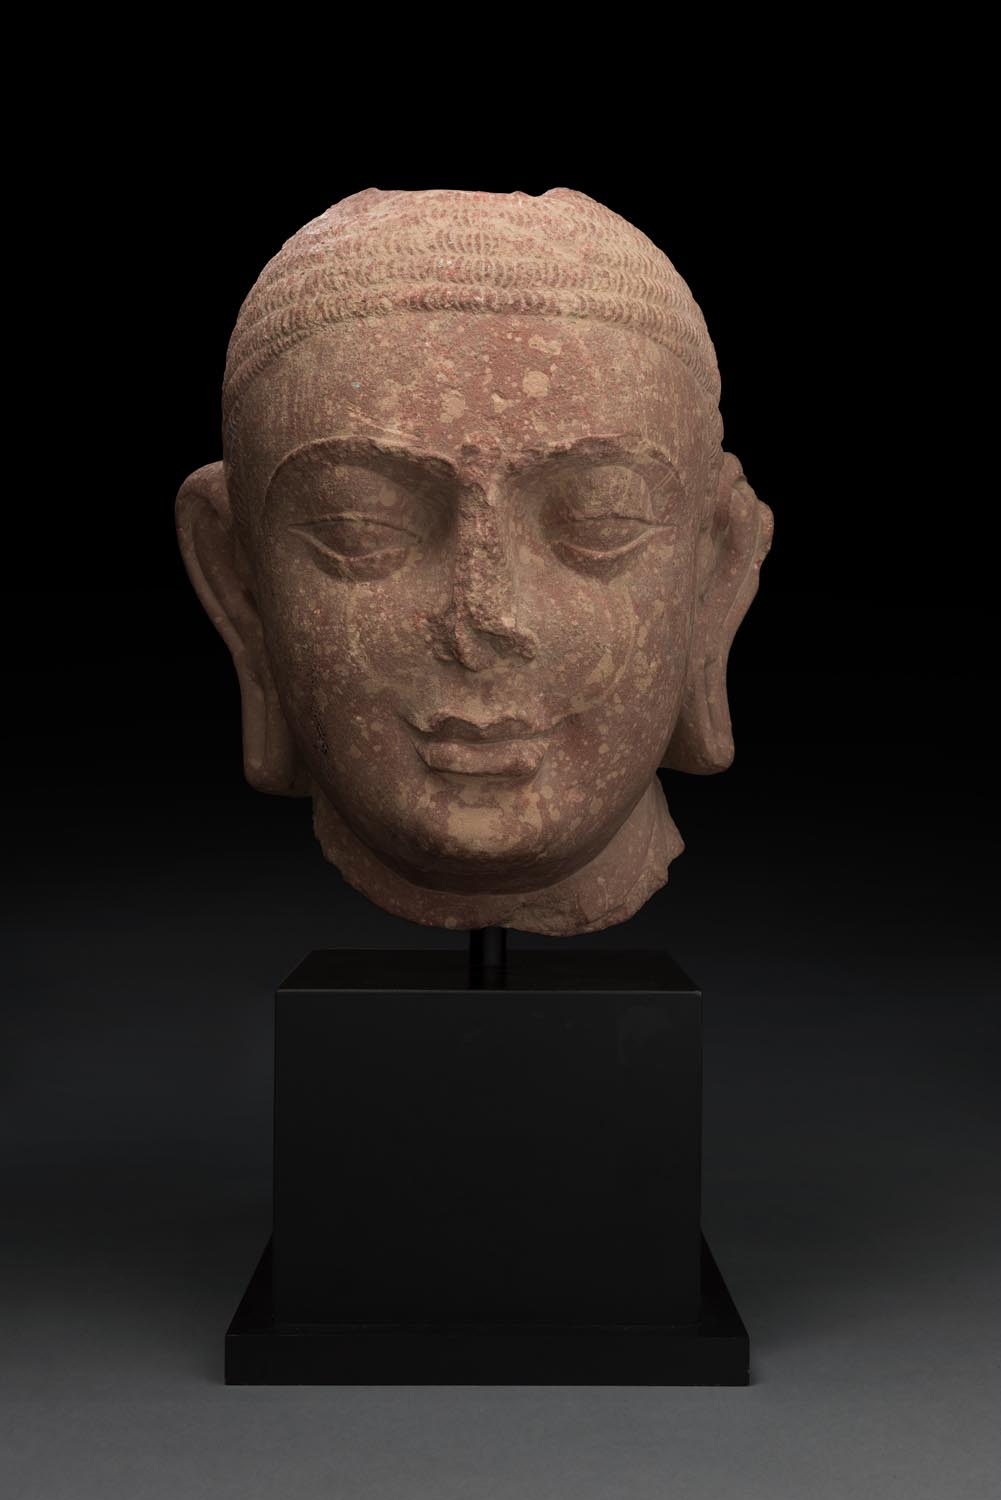 indian head buddhist personals Buddhism in india buddhism, or the spiritual tradition of the awakened one,  buddha, (buddha-dharma) is regarded as one of the three most widespread  major.